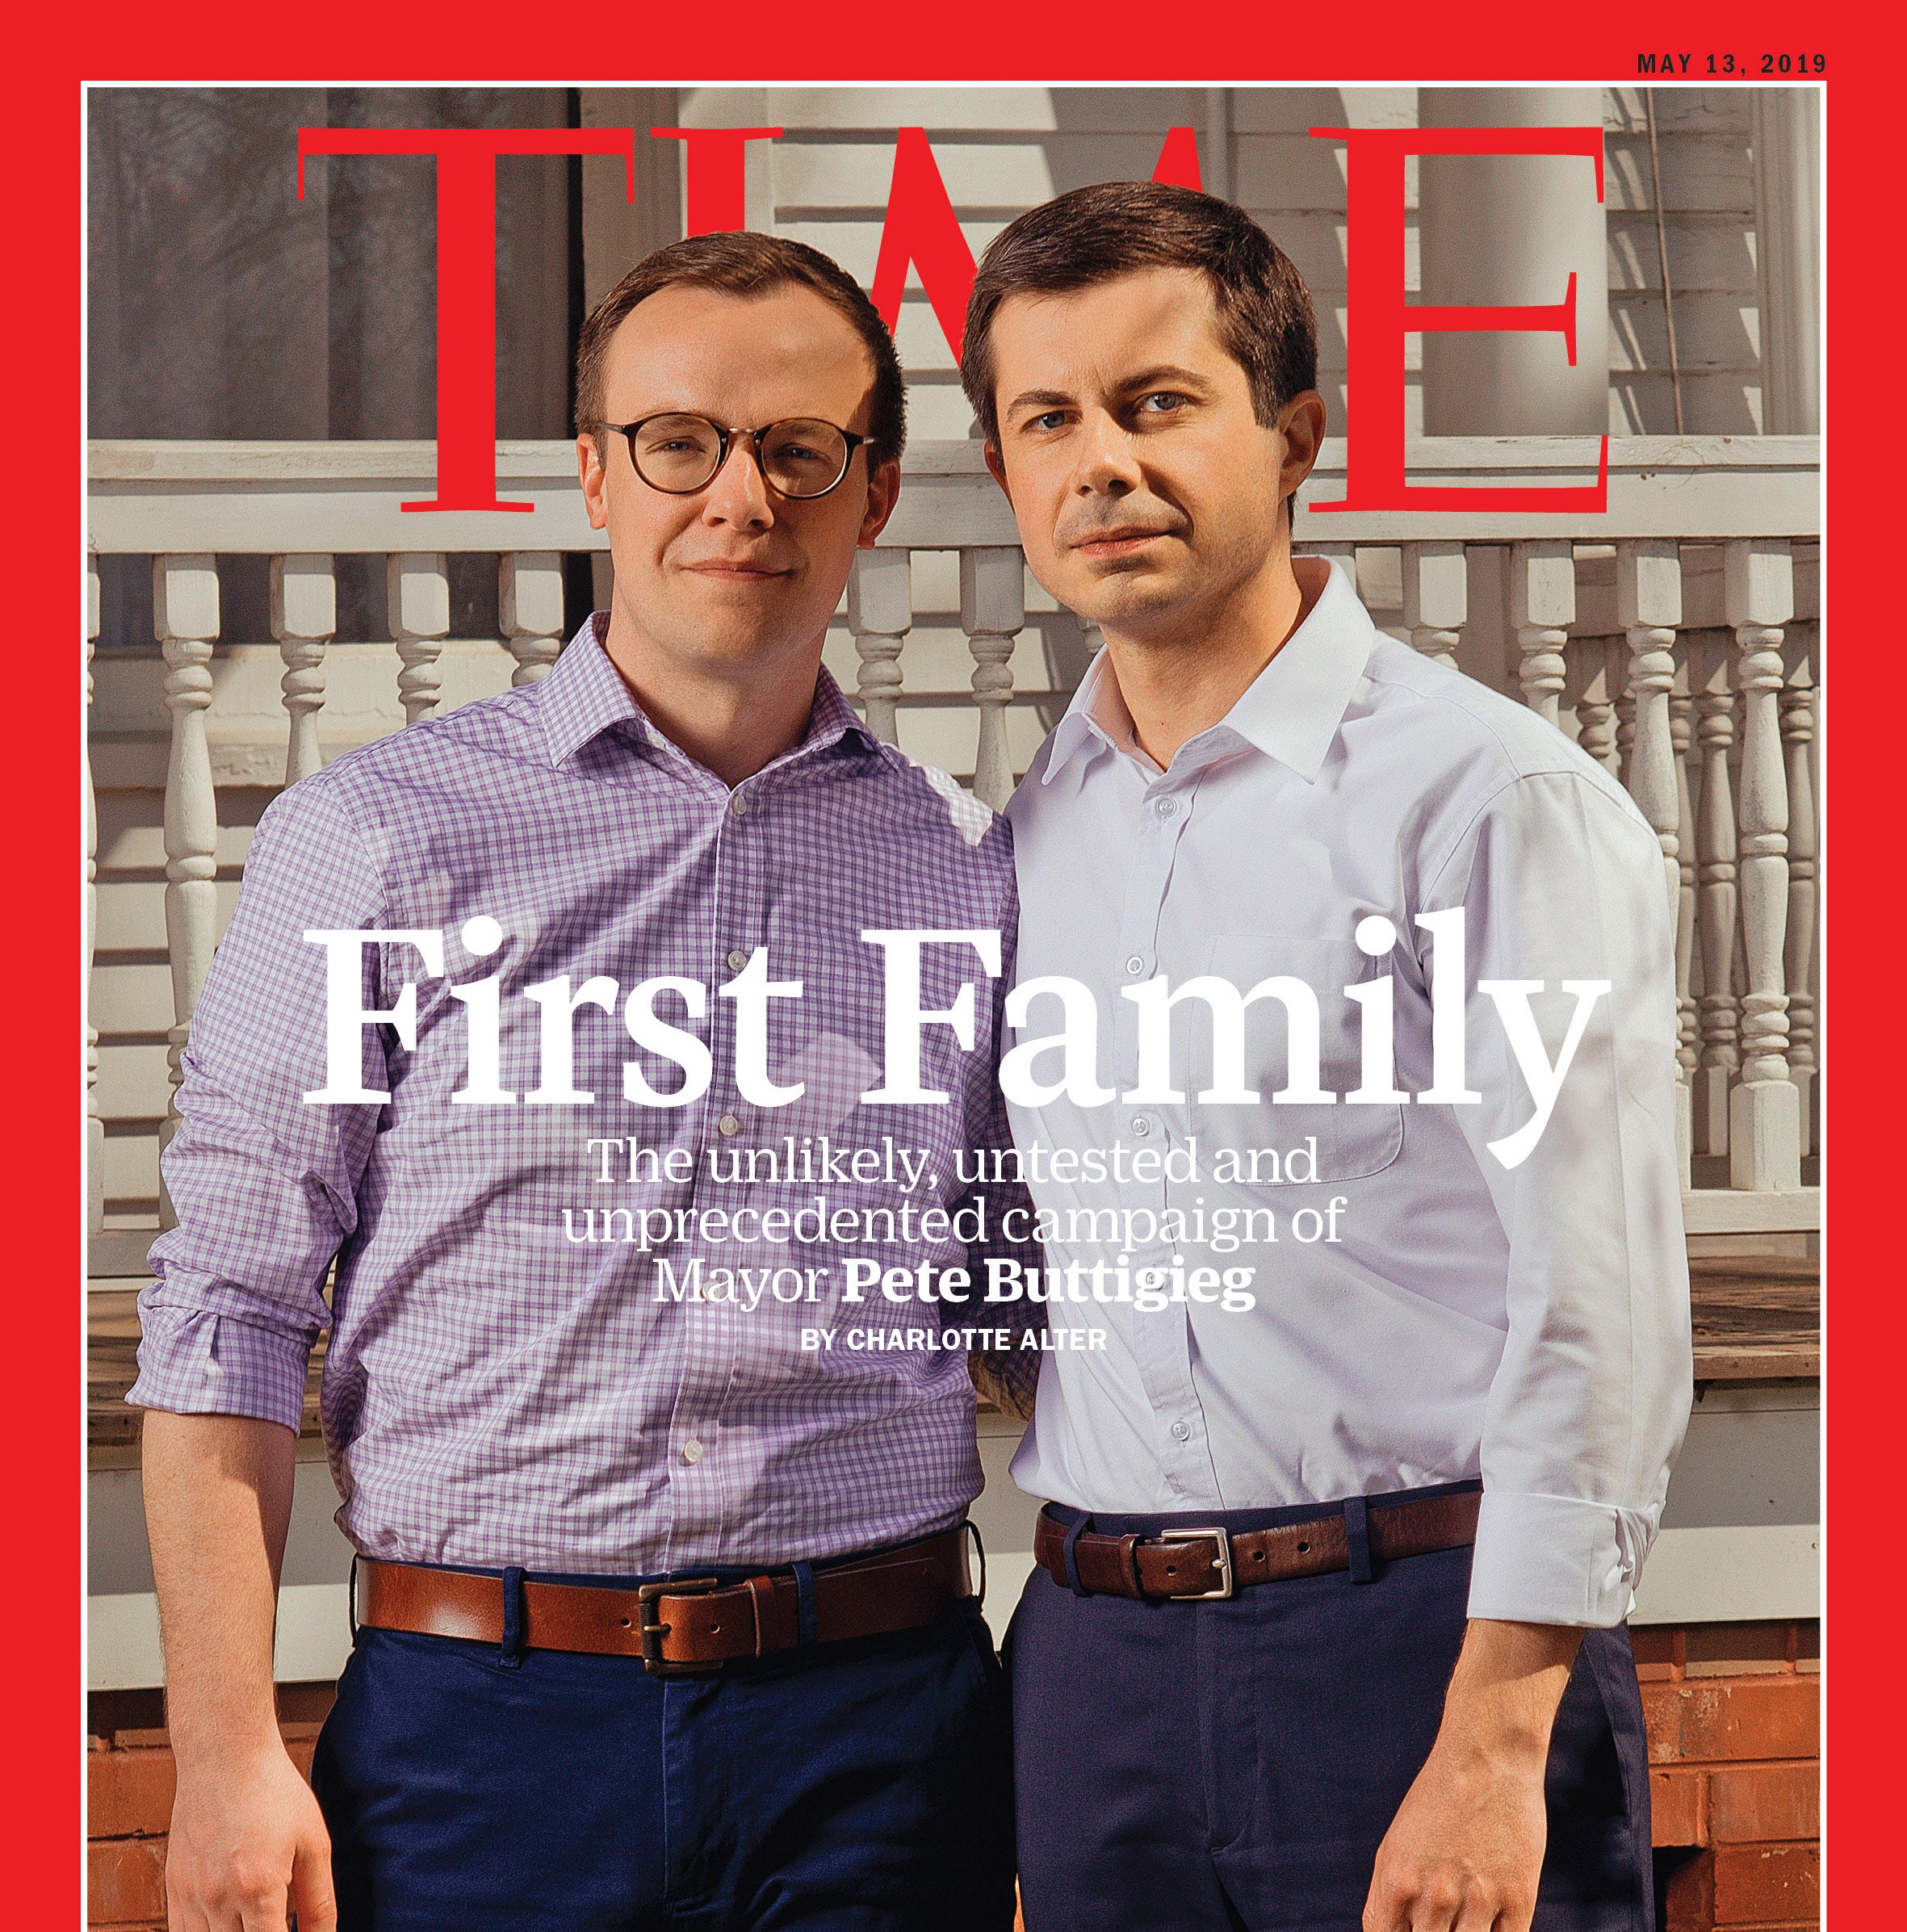 Pete Buttigieg lands on cover of Time magazine